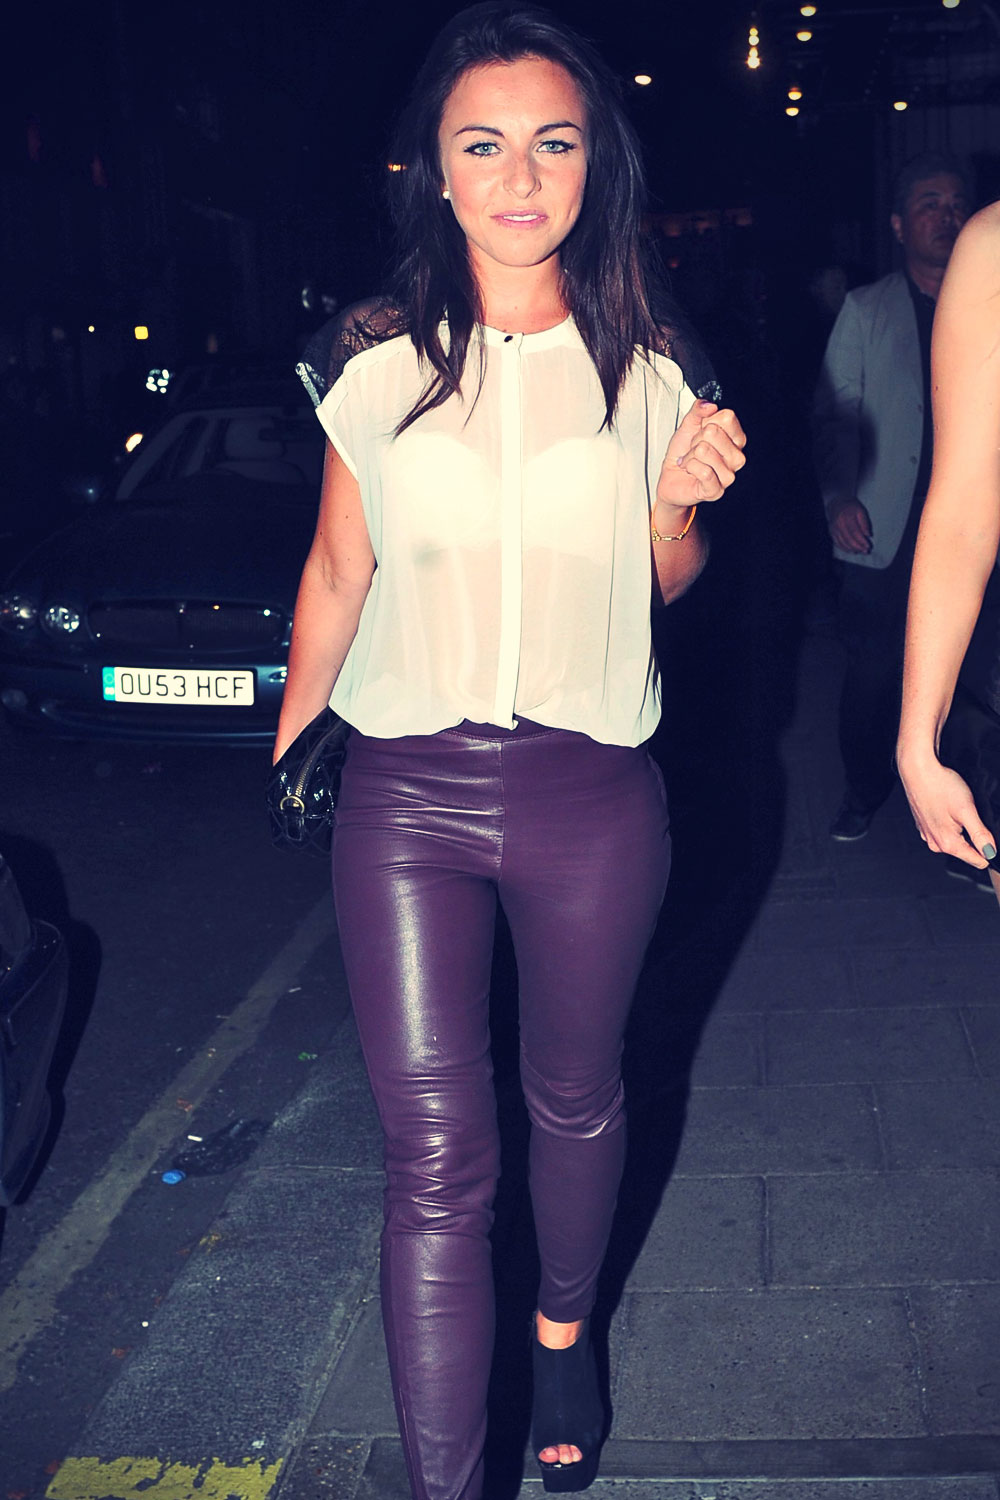 Louisa Lytton out and about for the night